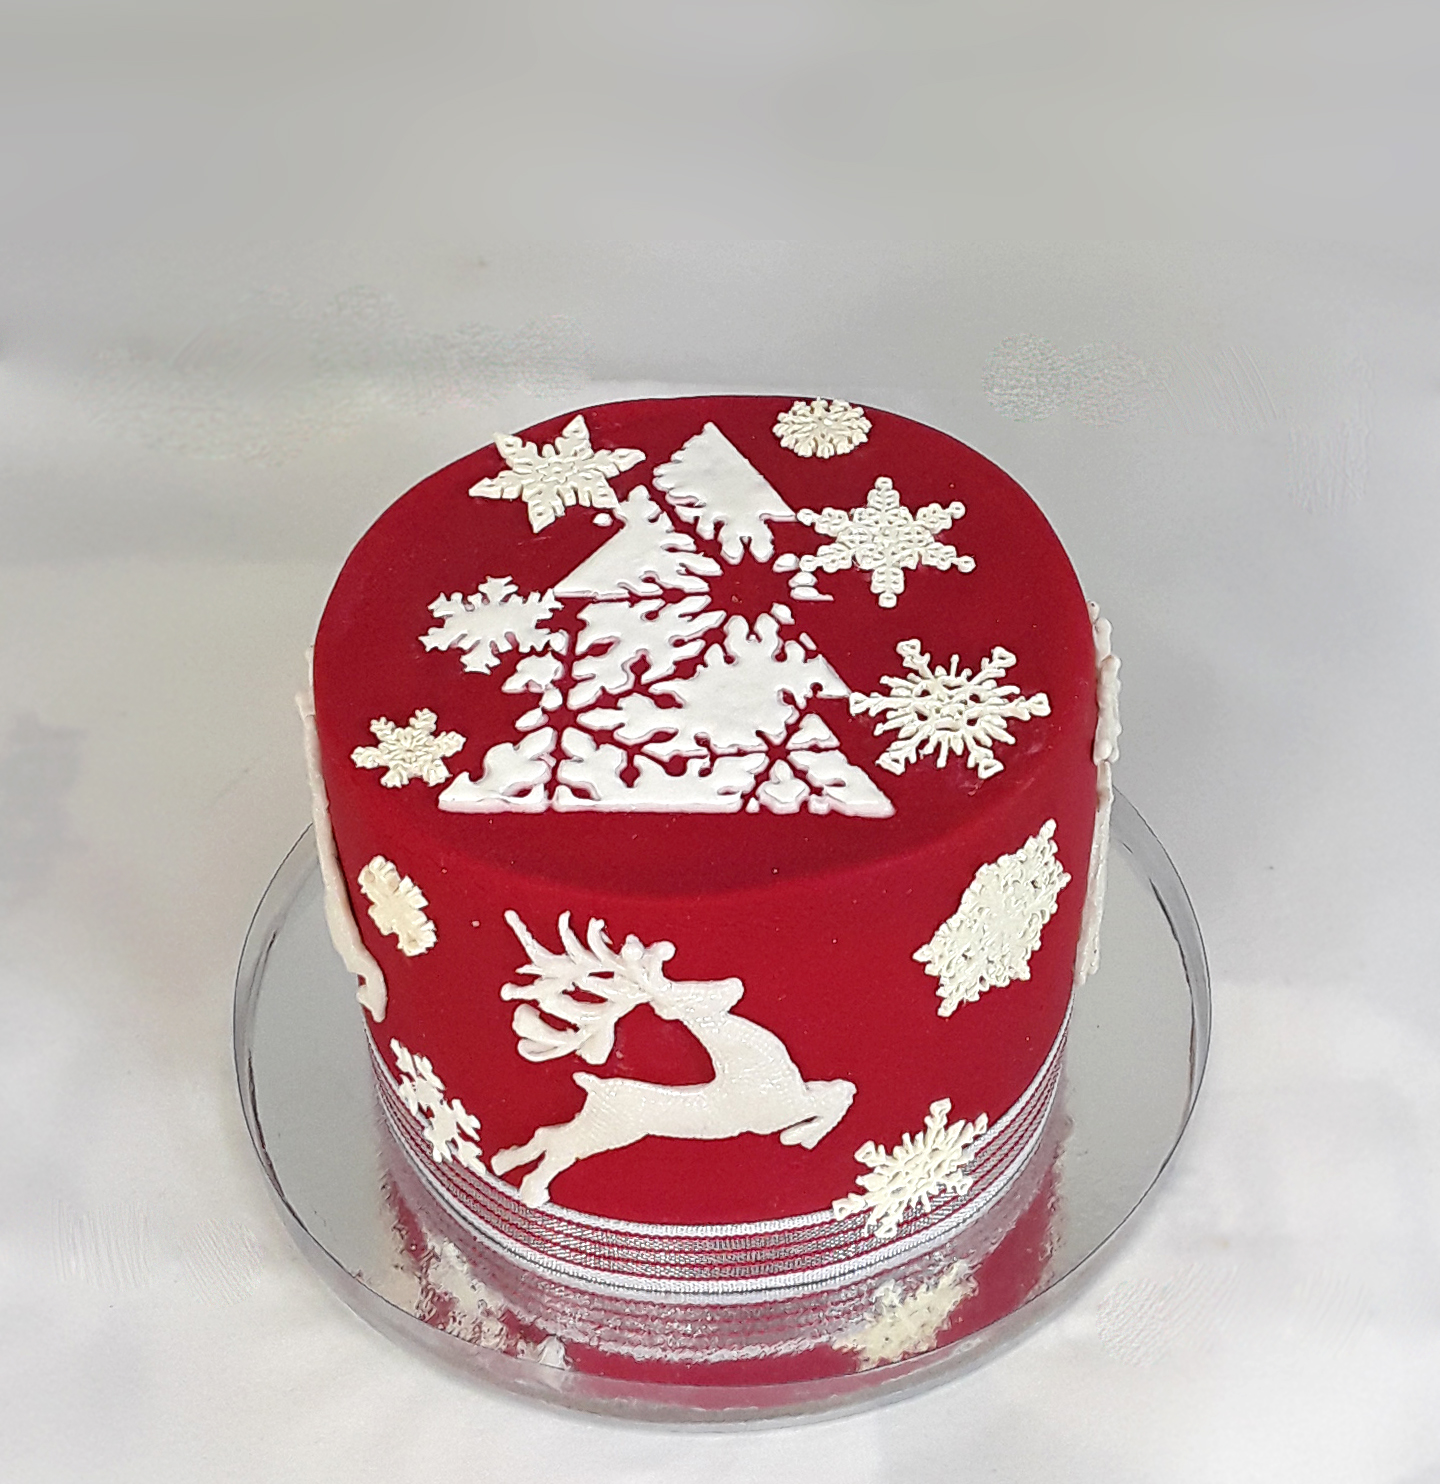 Christmas cake - red and white